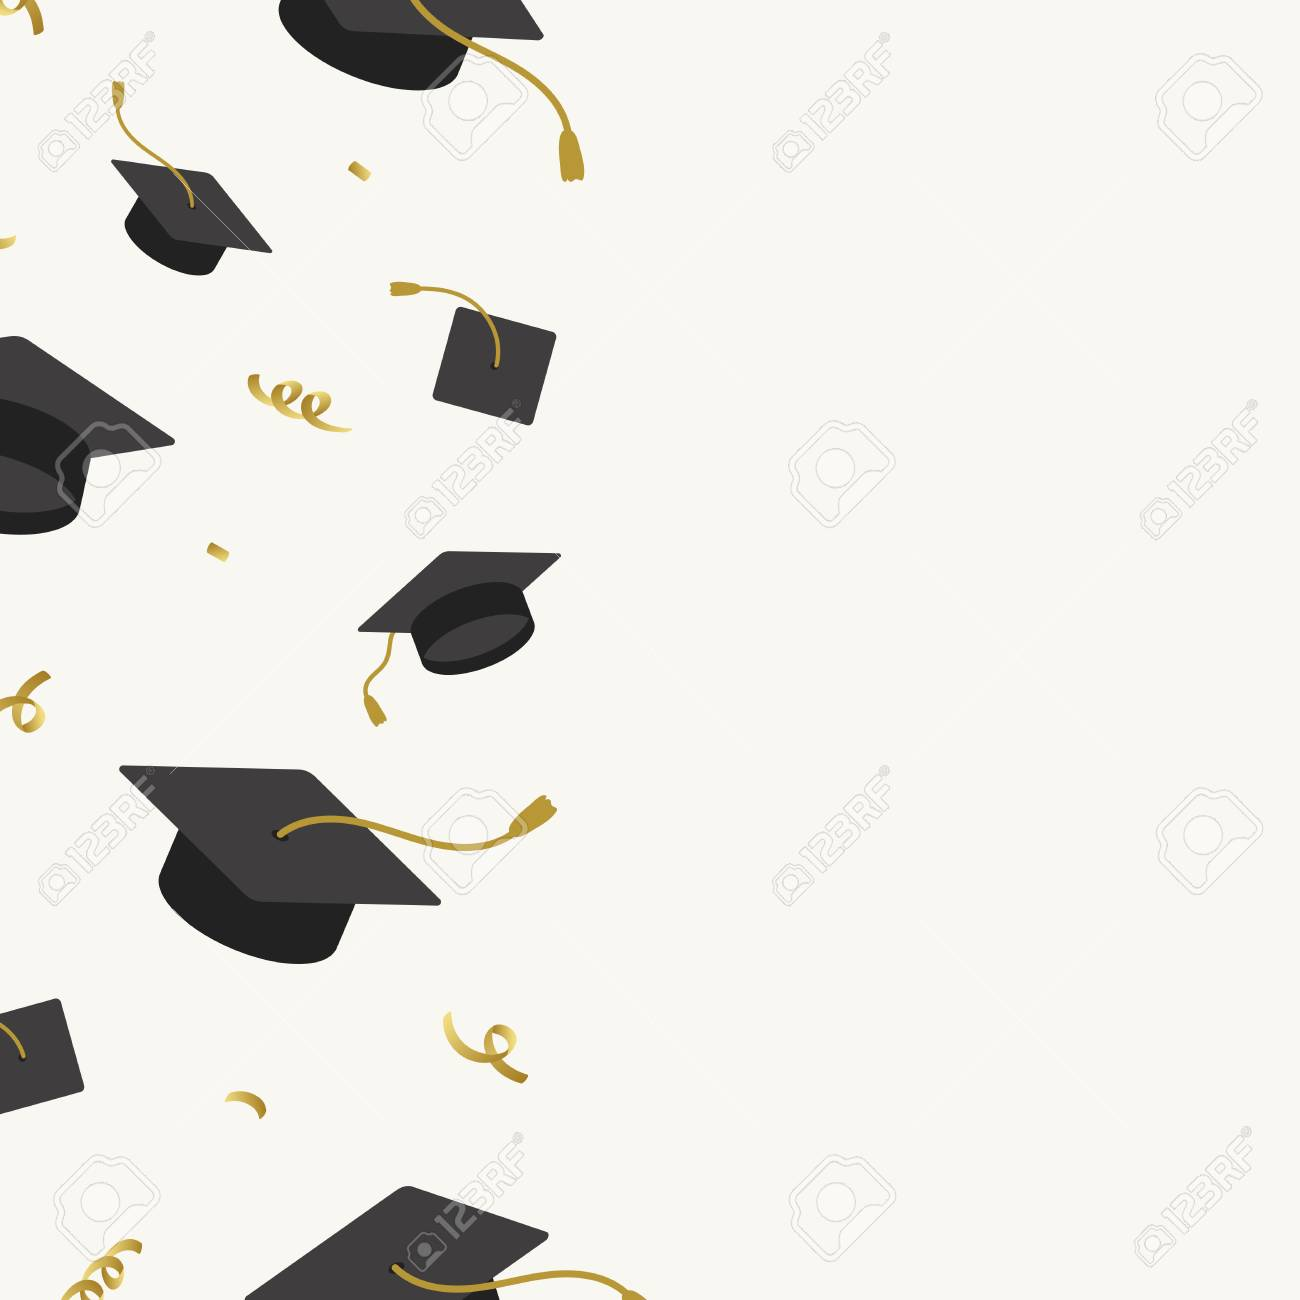 Graduation background with mortar boards vector - 124774264